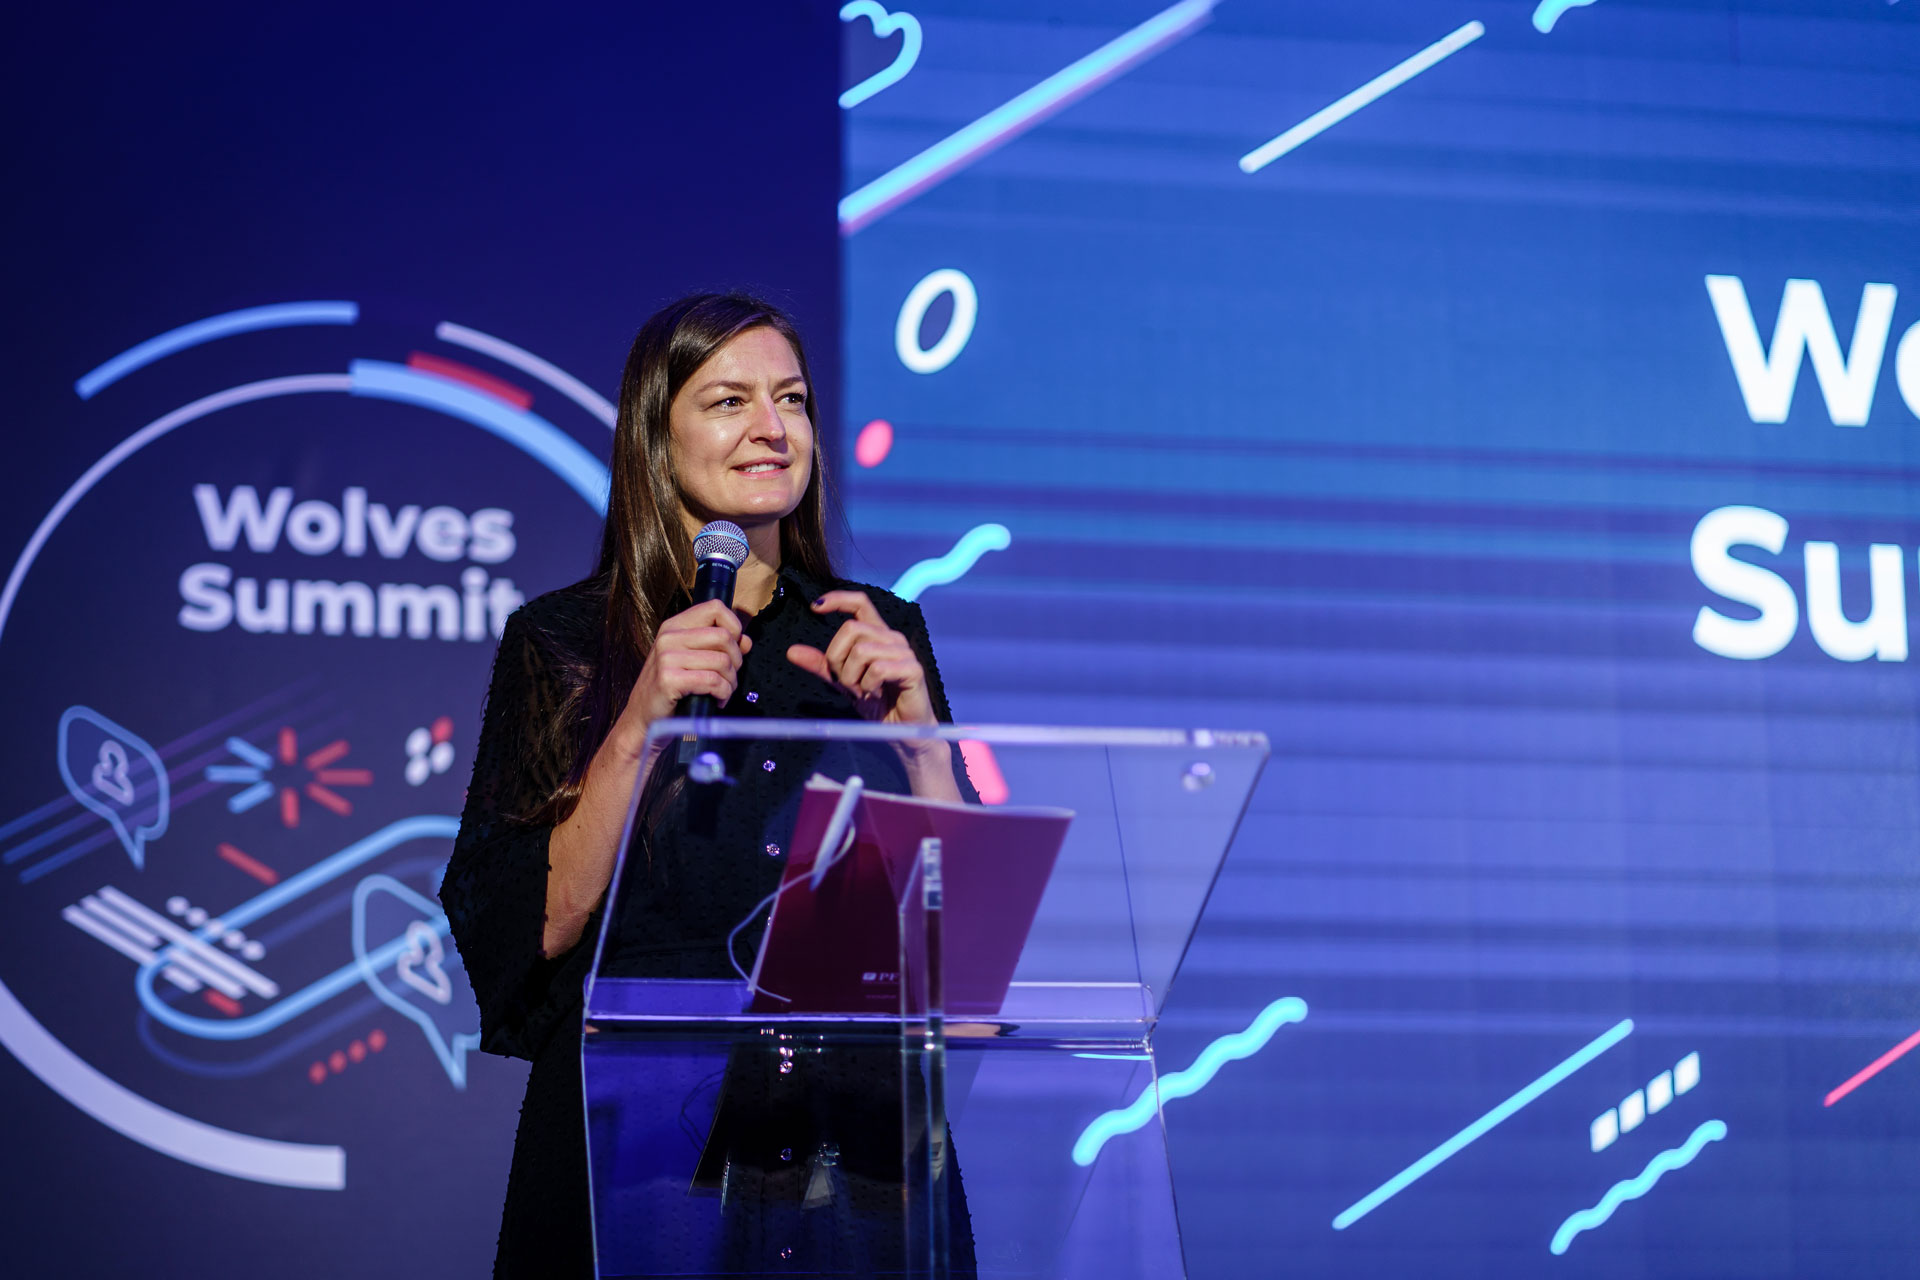 Wolves Summit is one of the biggest business conference in Europe, organized each year in Warsaw. It is a place for Startups, Investors, Corporates and Executives, where innovation meets business and capital.